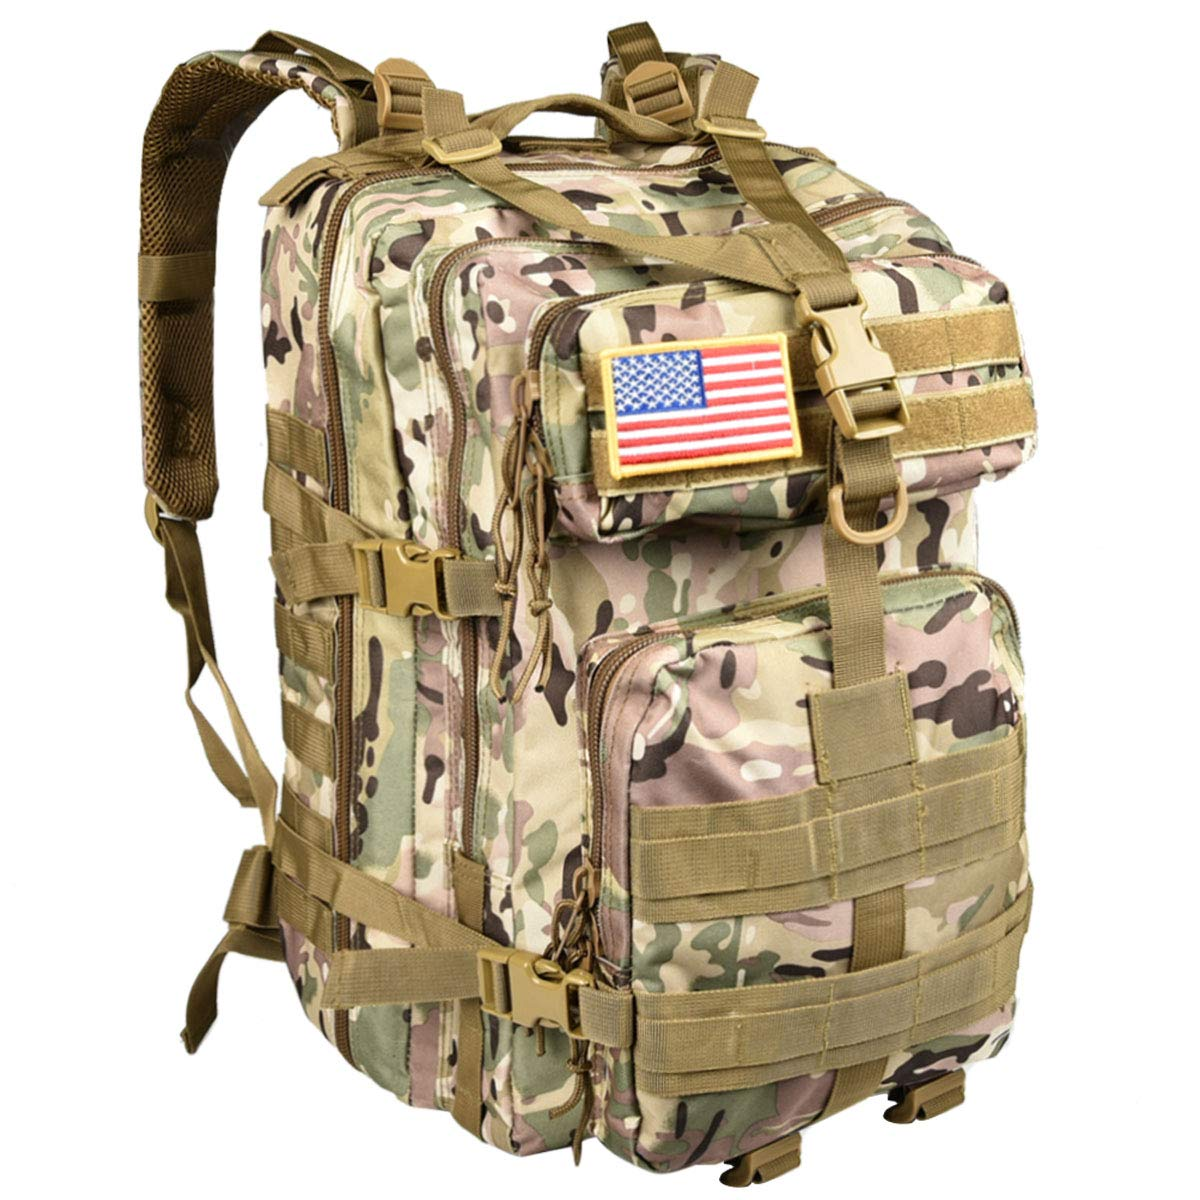 NOOLA 40L Military Tactical Army Backpack 3 Day Pack Molle Bag Backpack Rucksacks for Outdoor Hiking Camping Trekking Hunting with Flag Patch Multicam CP